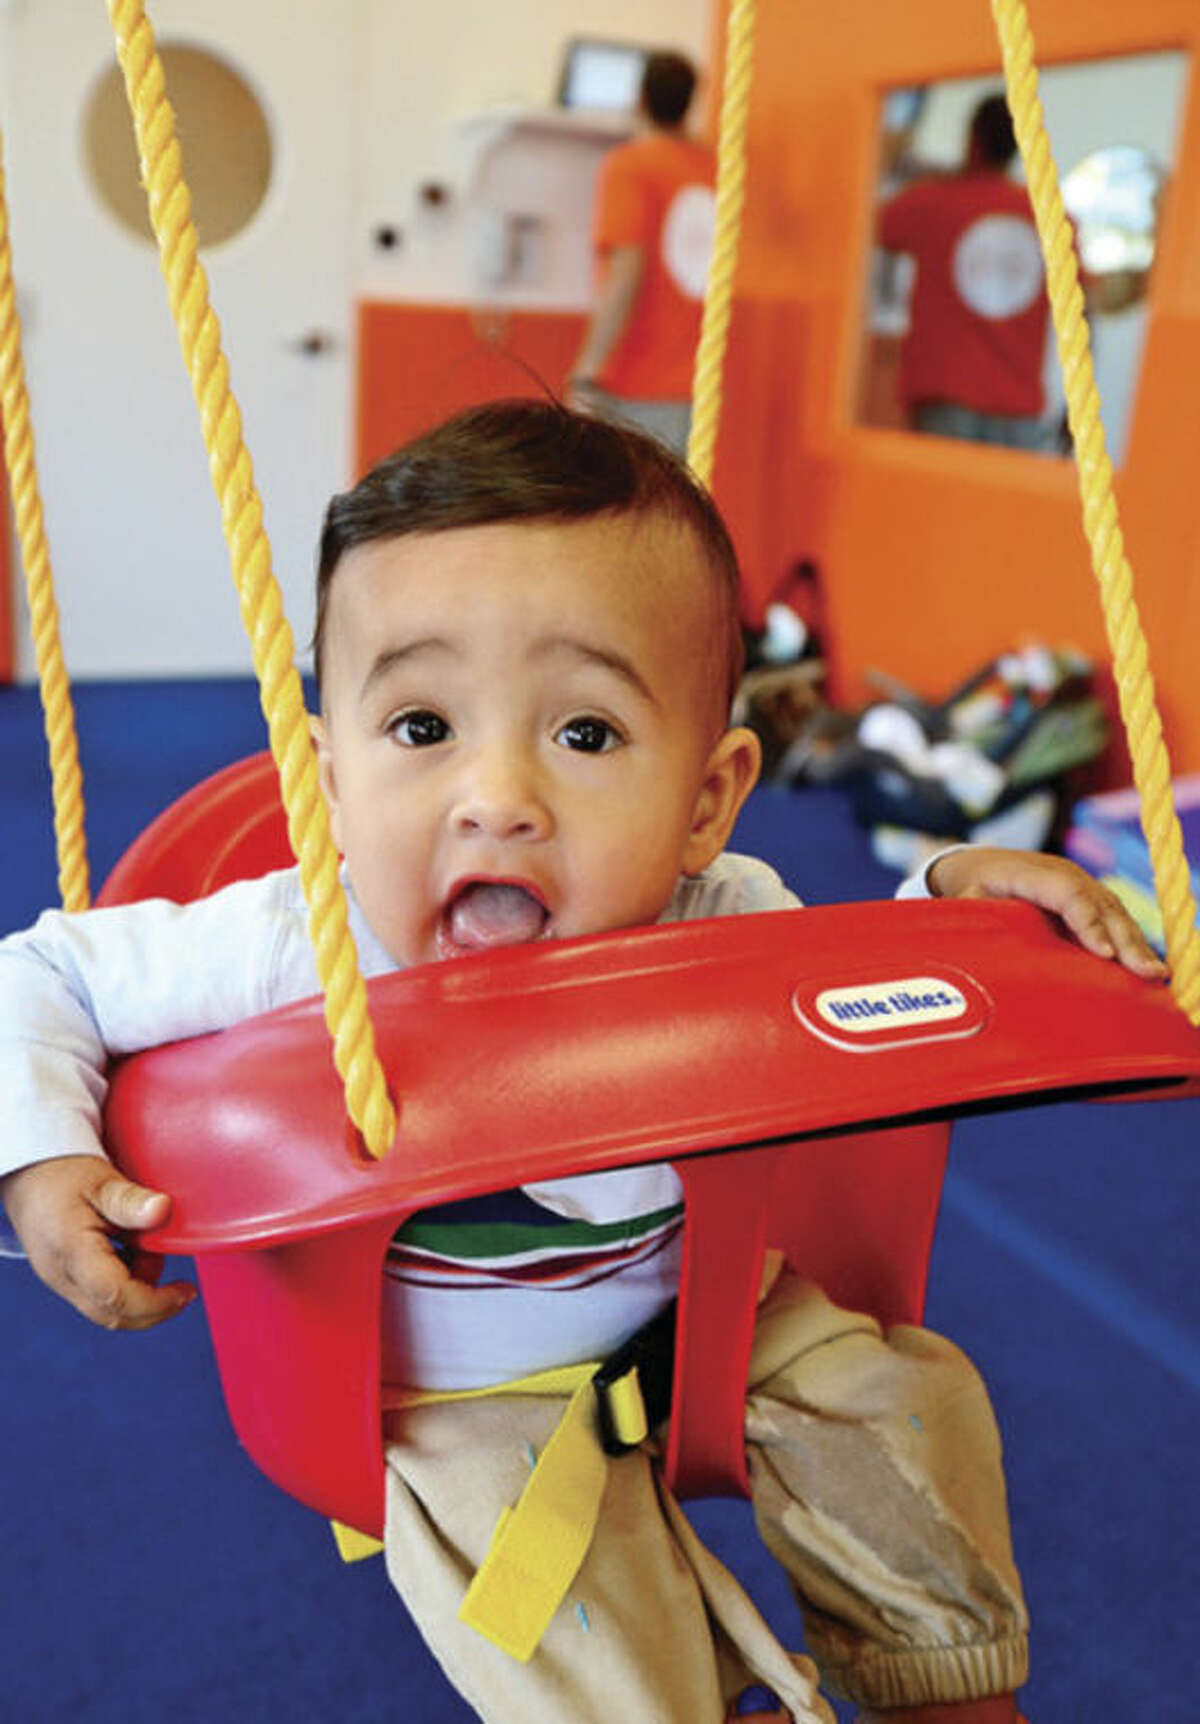 7 month old Lincoln Martell, swings at Kidsville in Westport where they announce thed opening of their new 4,800 square foot facility at 1572 Post Road East Tuesday. Hour photo / Erik Trautmann